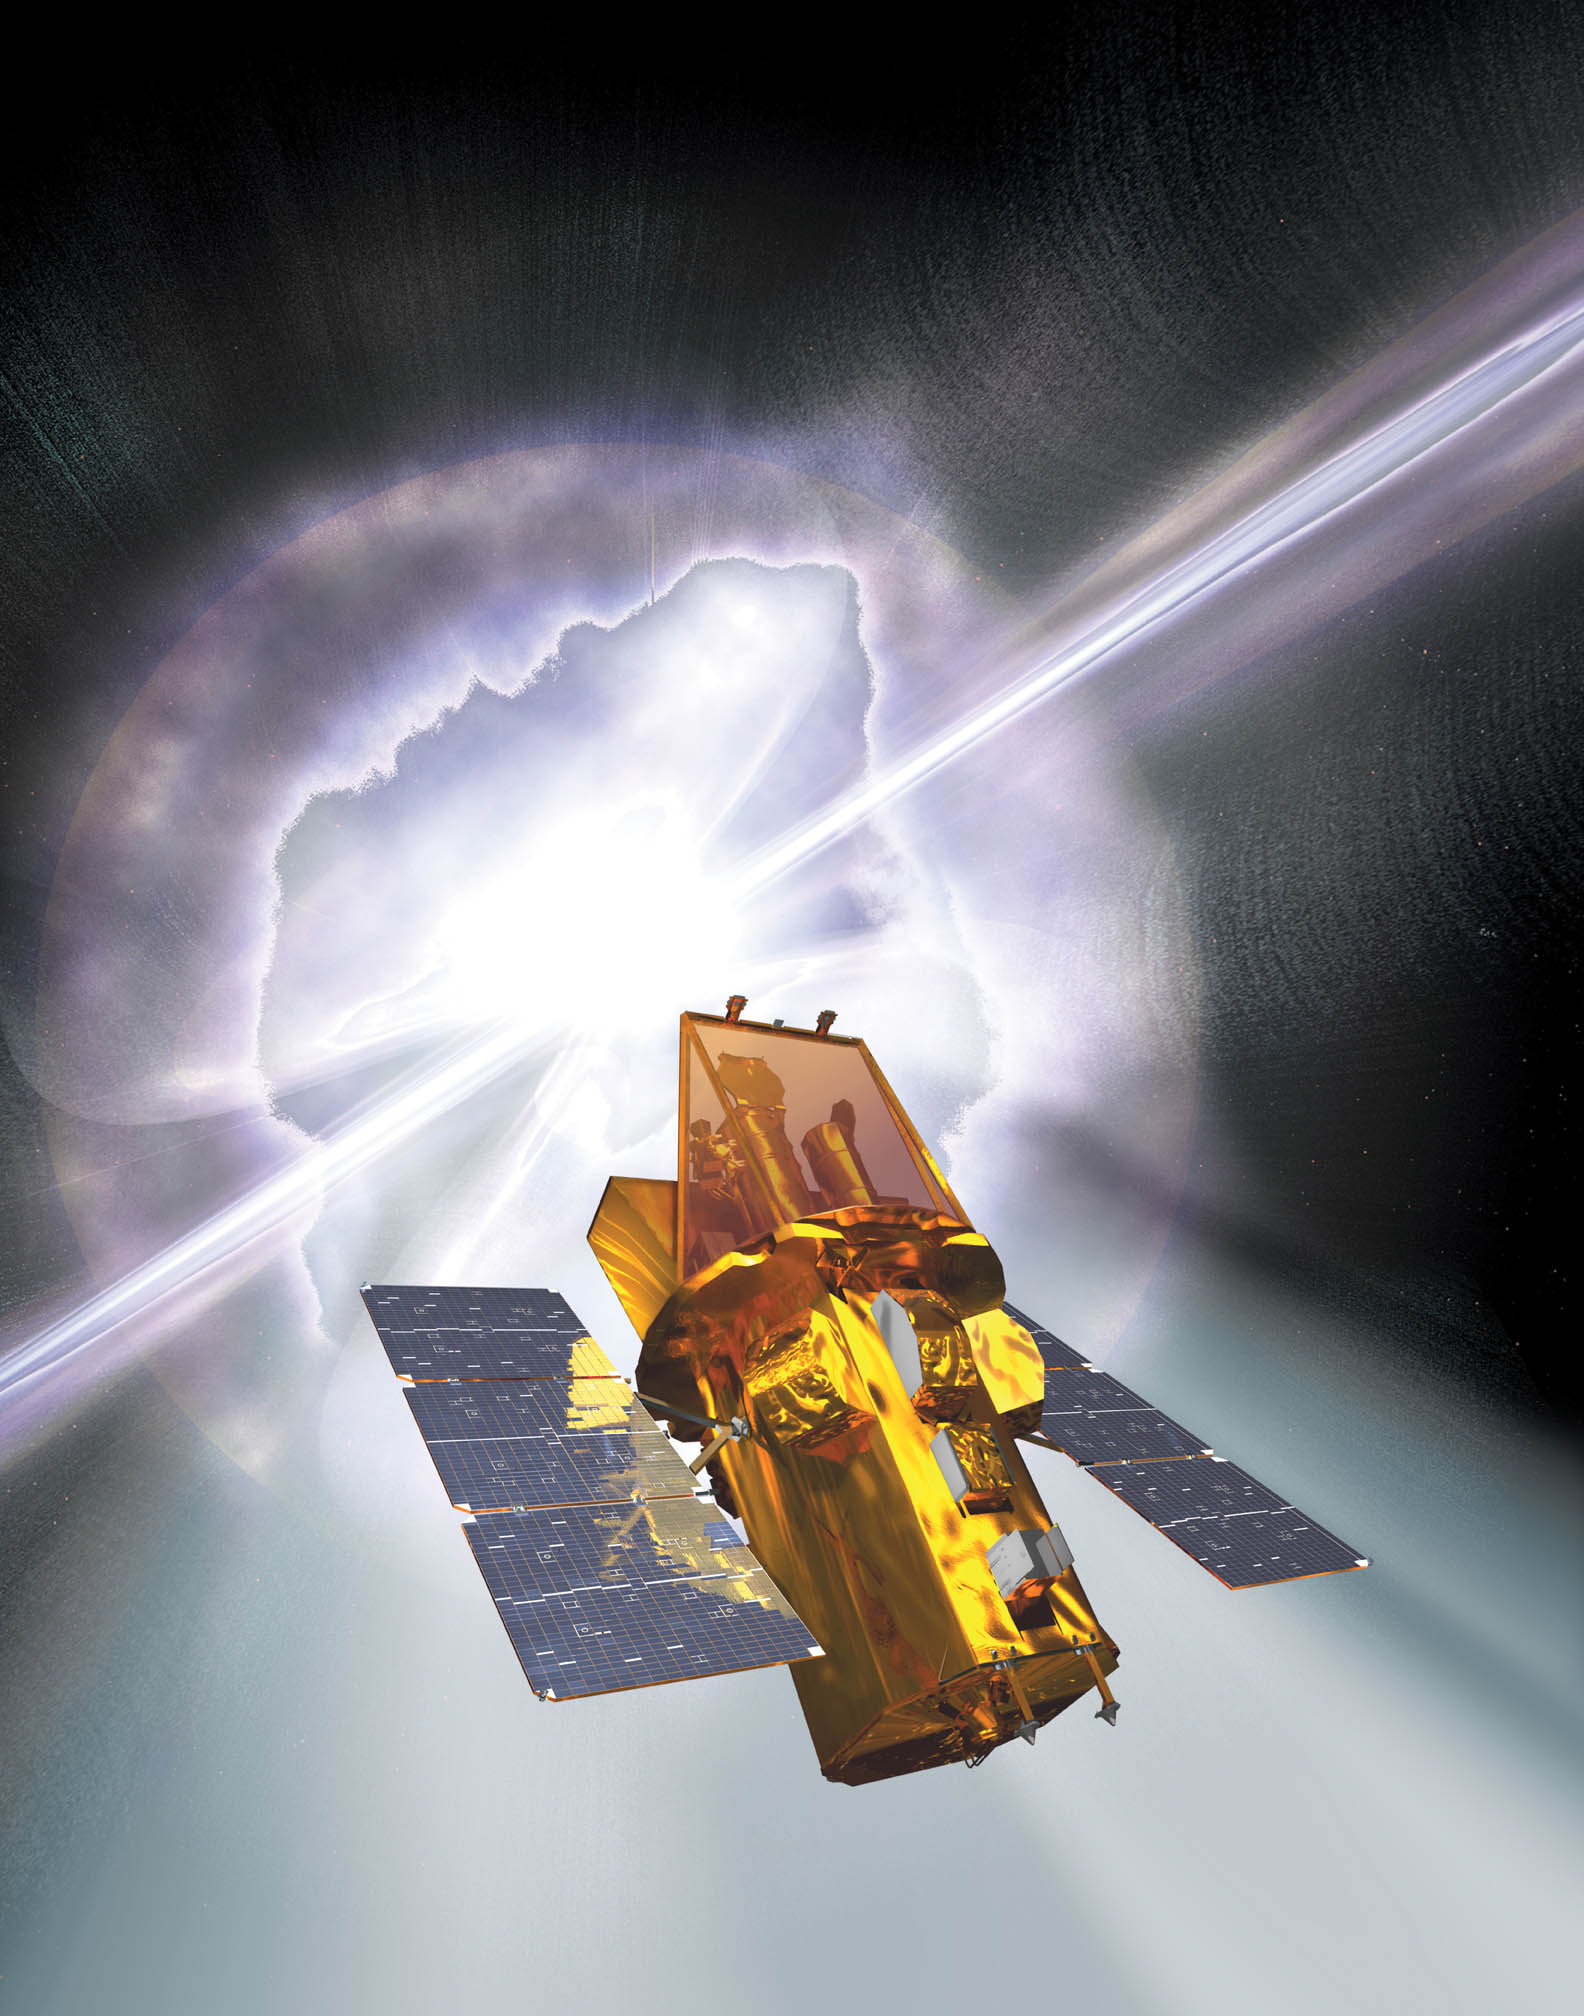 The SWIFT observatory observed a record change in the period of rotation of the comet 30